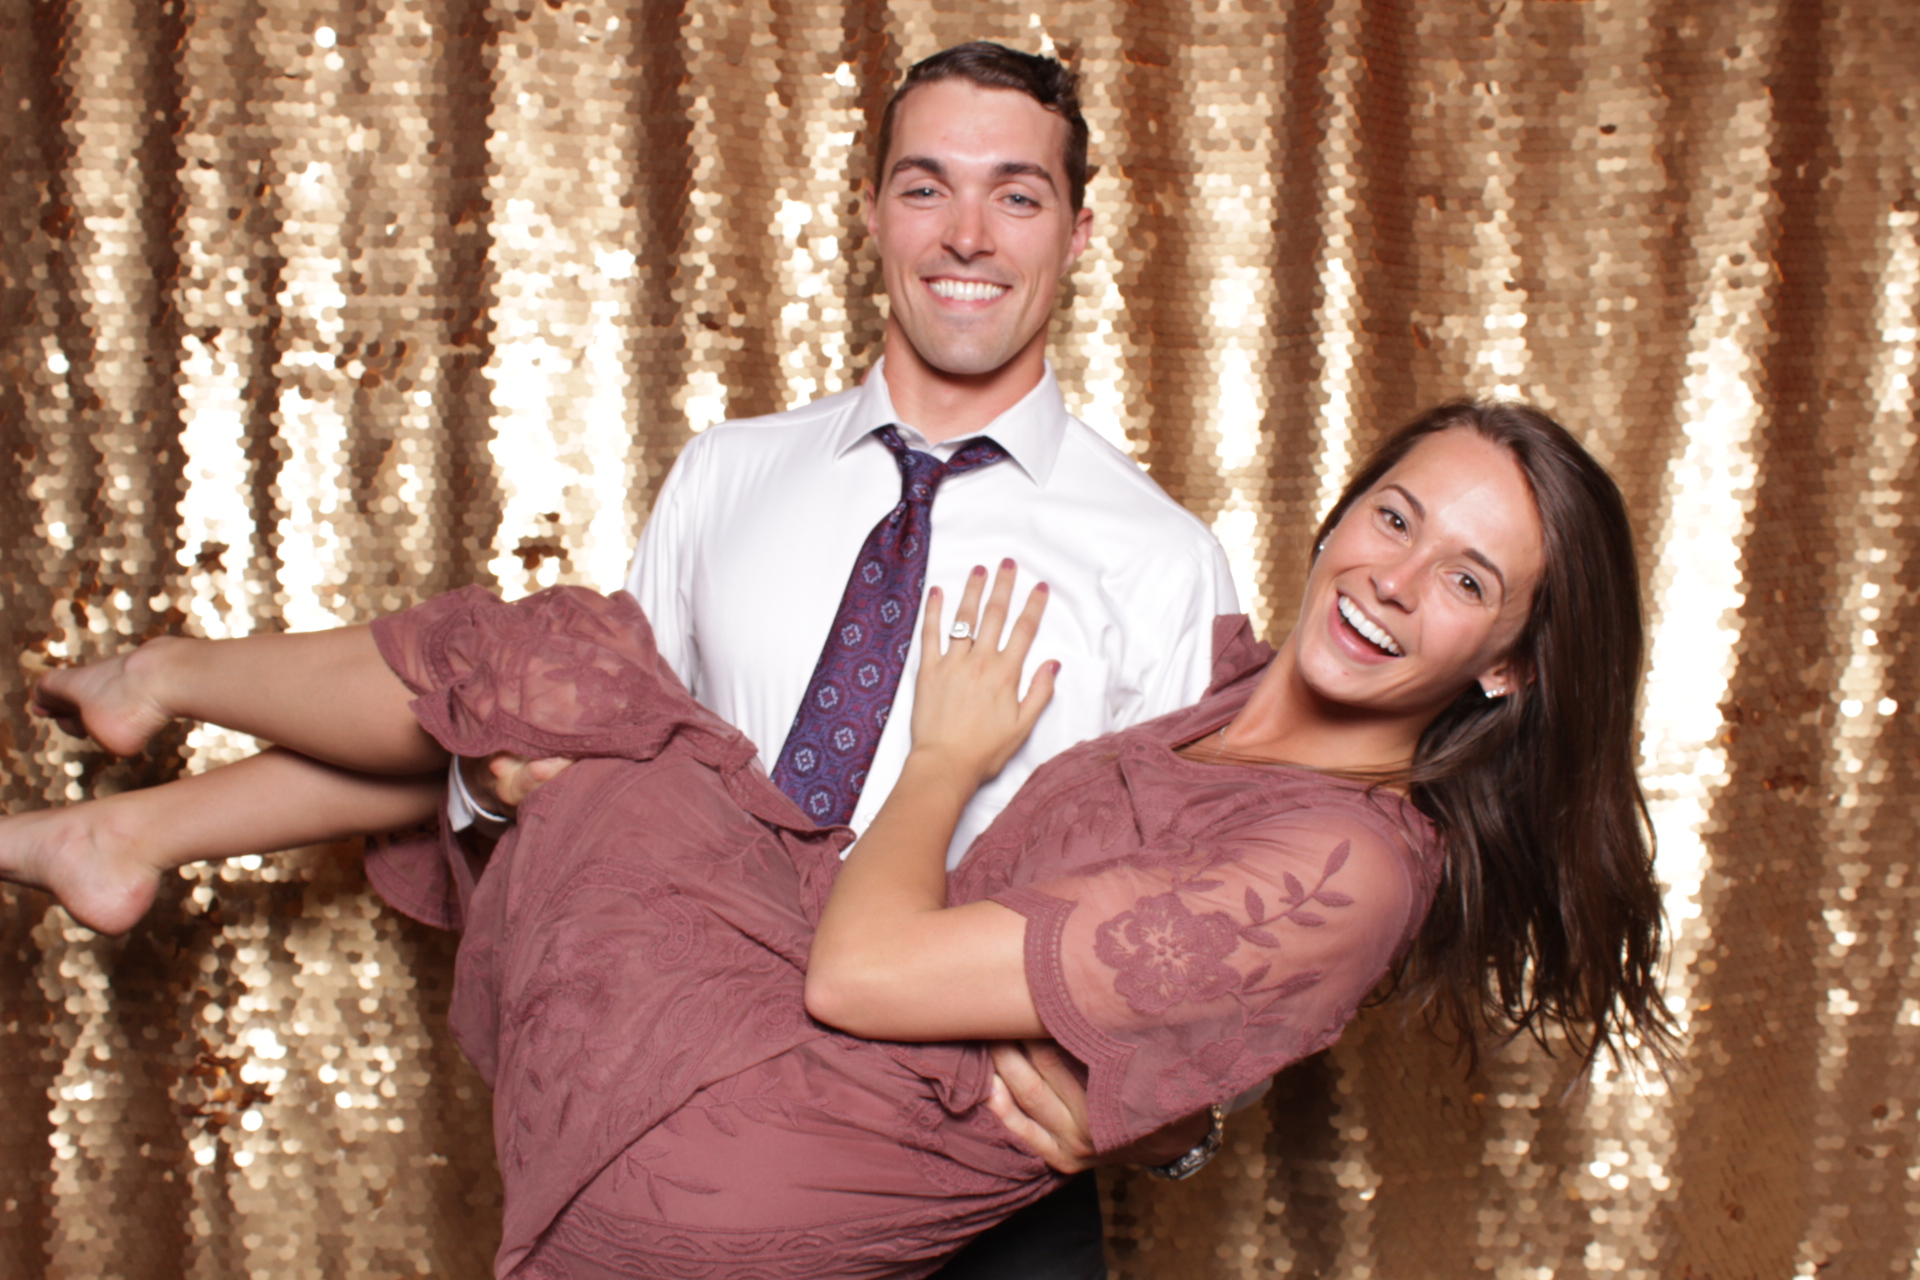 Minneapolis_St Paul_Photo_Booths_Weddings (15).jpg